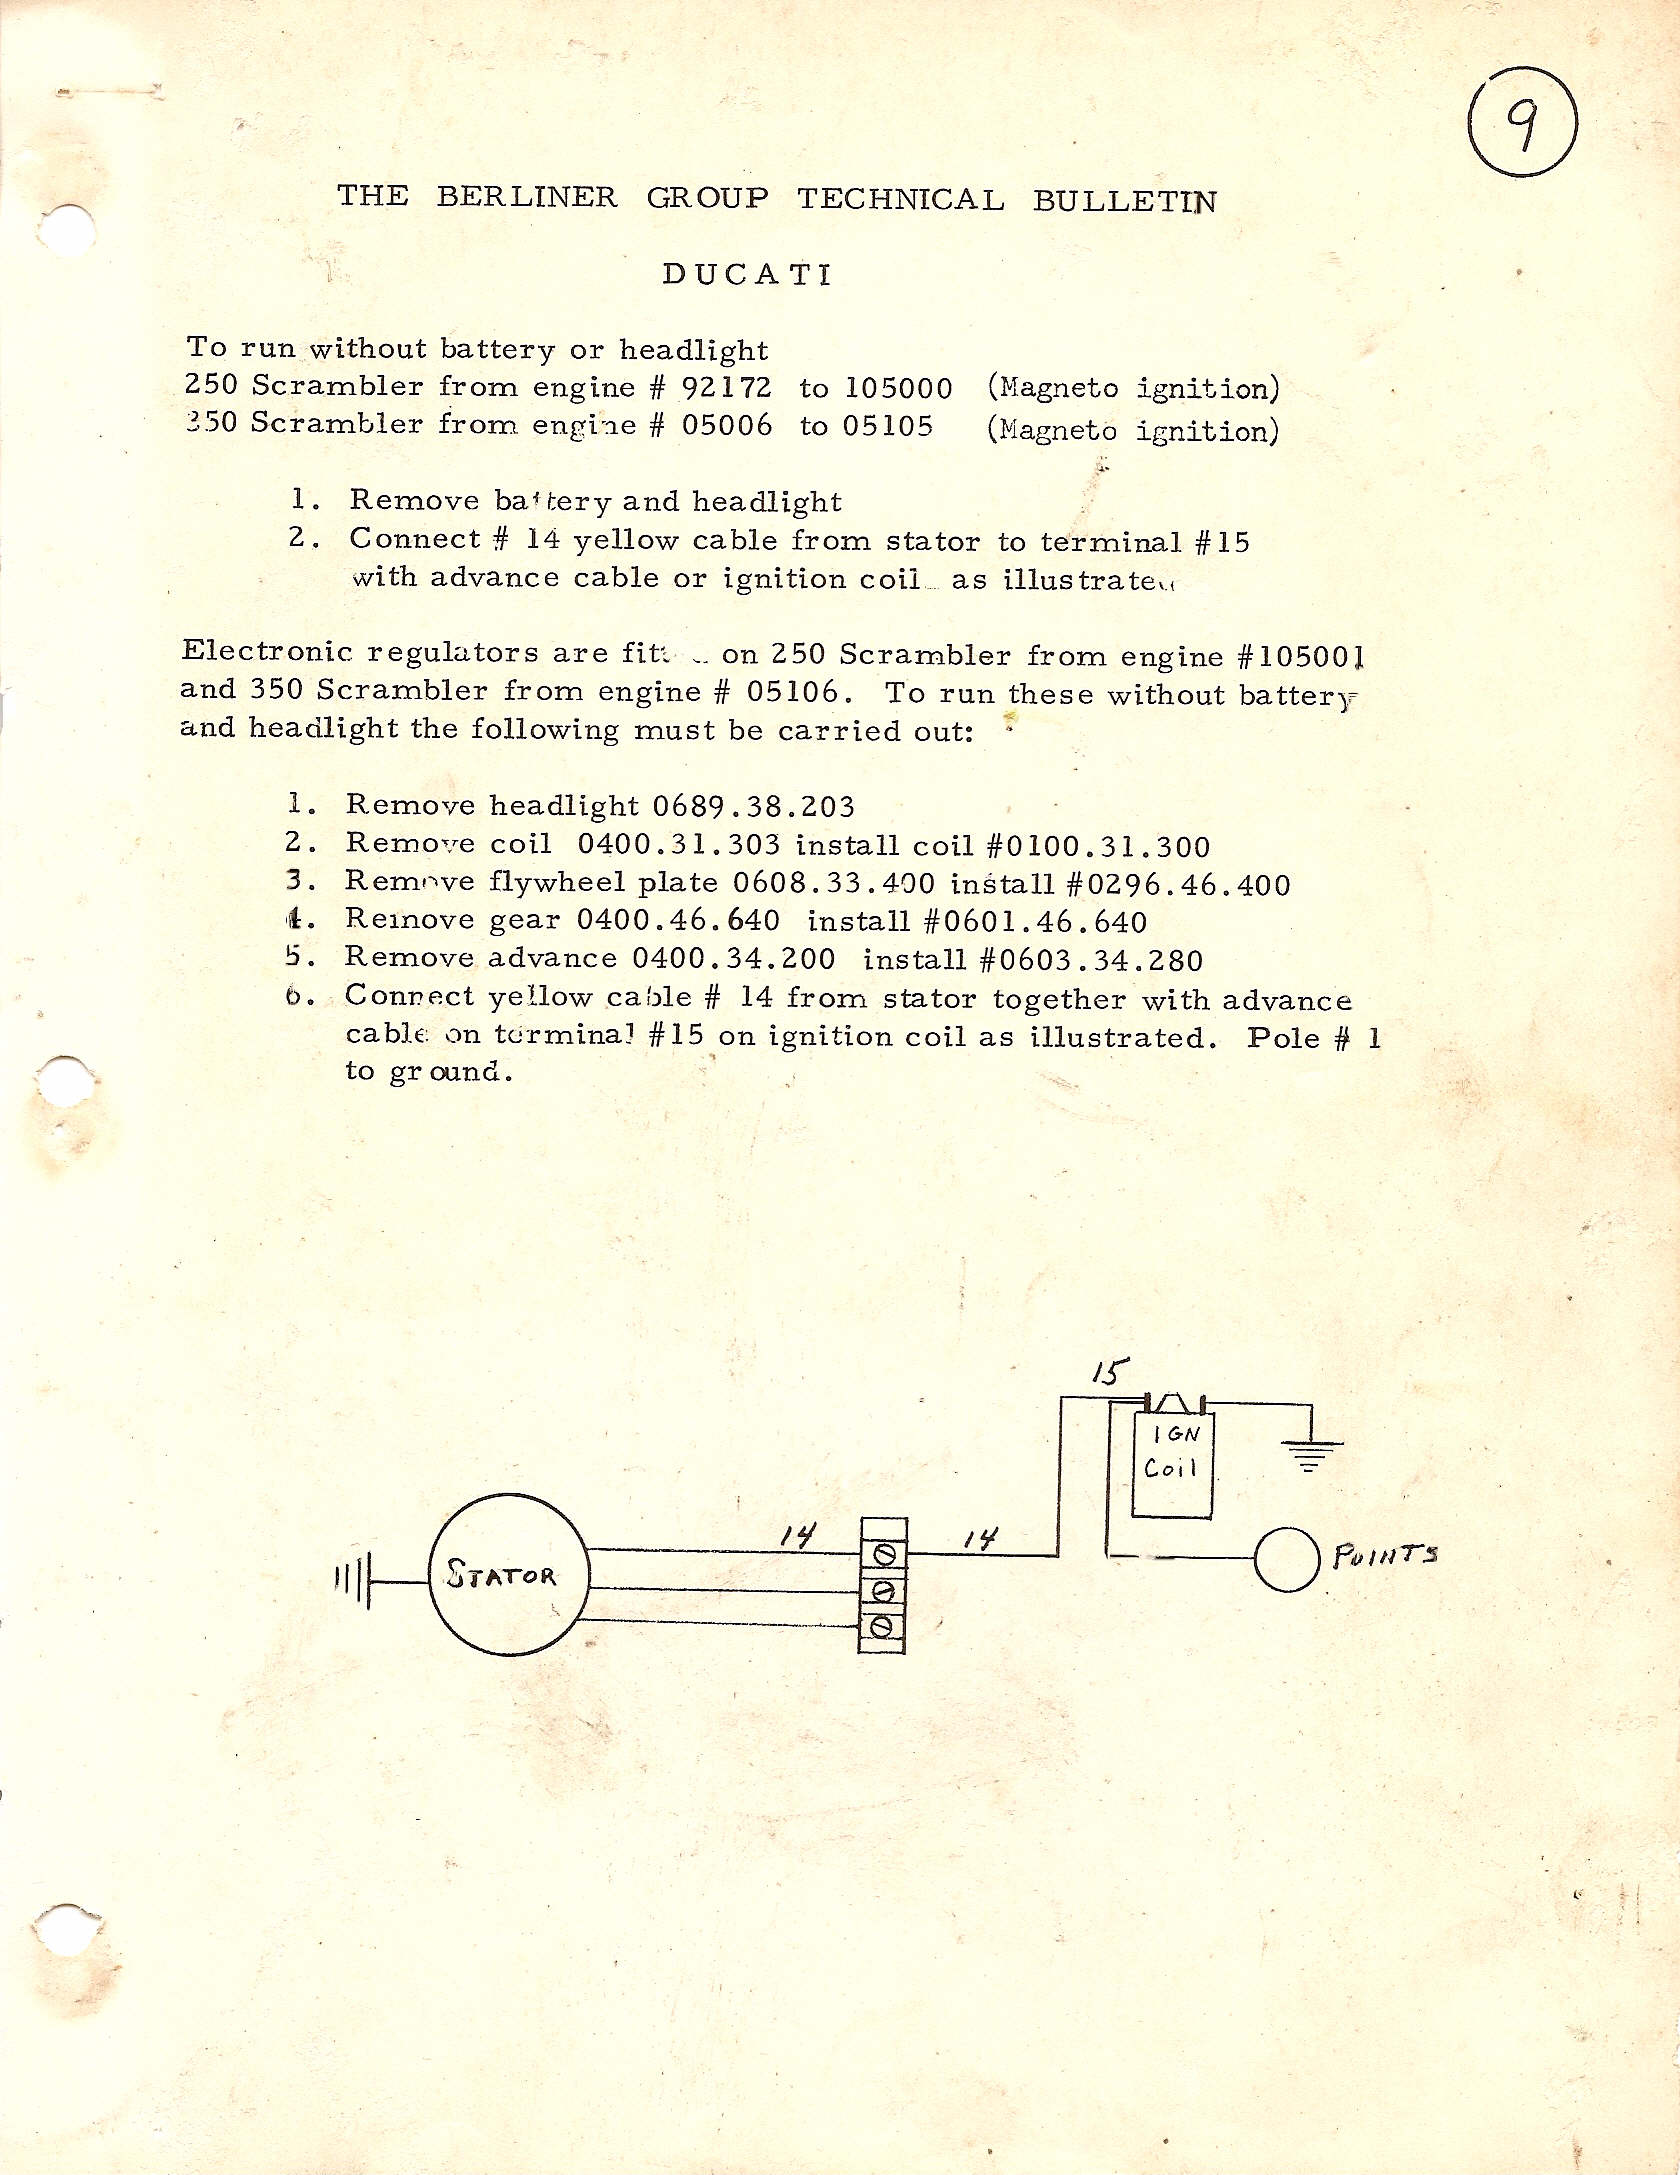 Ducati Singles Technical Information By Single Wiring Harness Berliner 9 To Run Without Battery Or Headlight